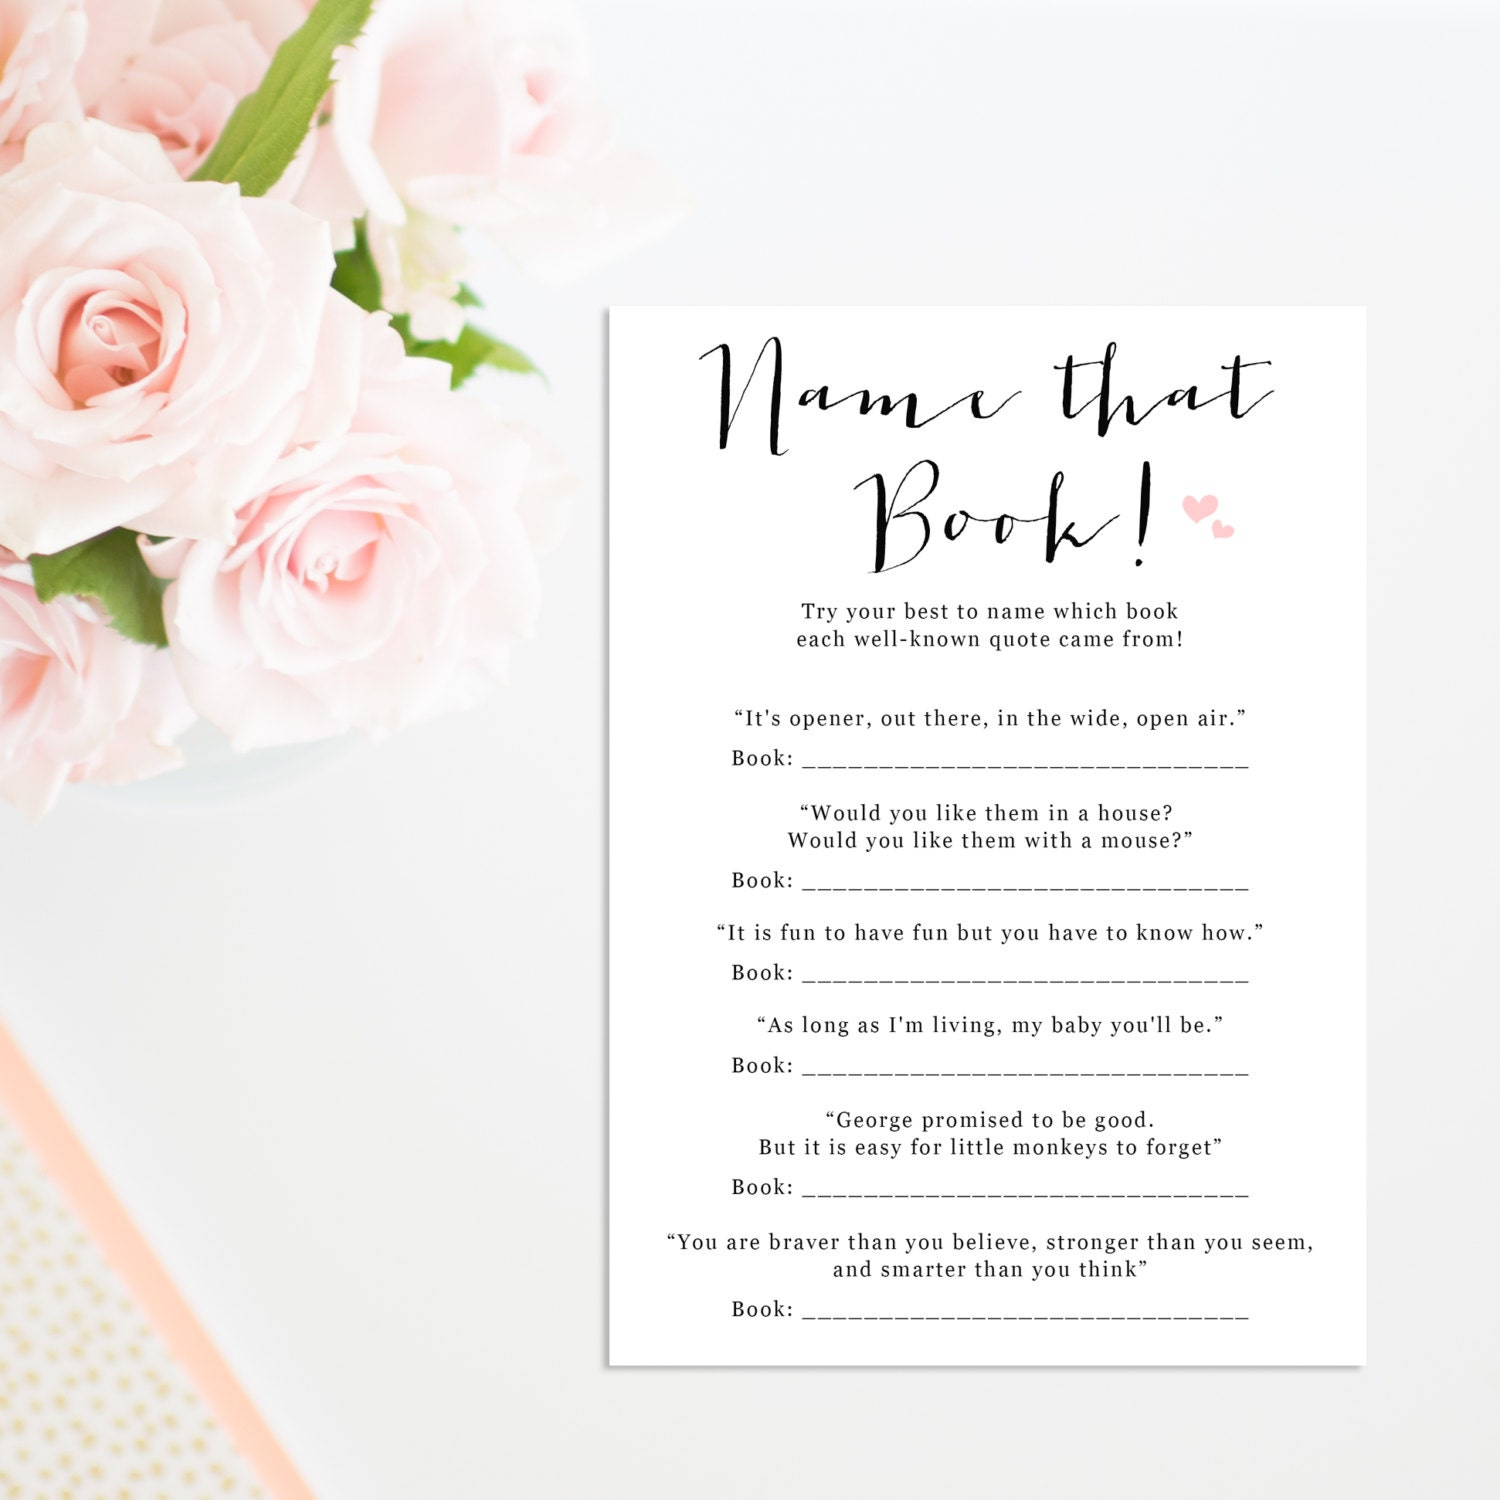 Quotes For Baby Shower Printable Children's Book Quiz Printable Baby Shower